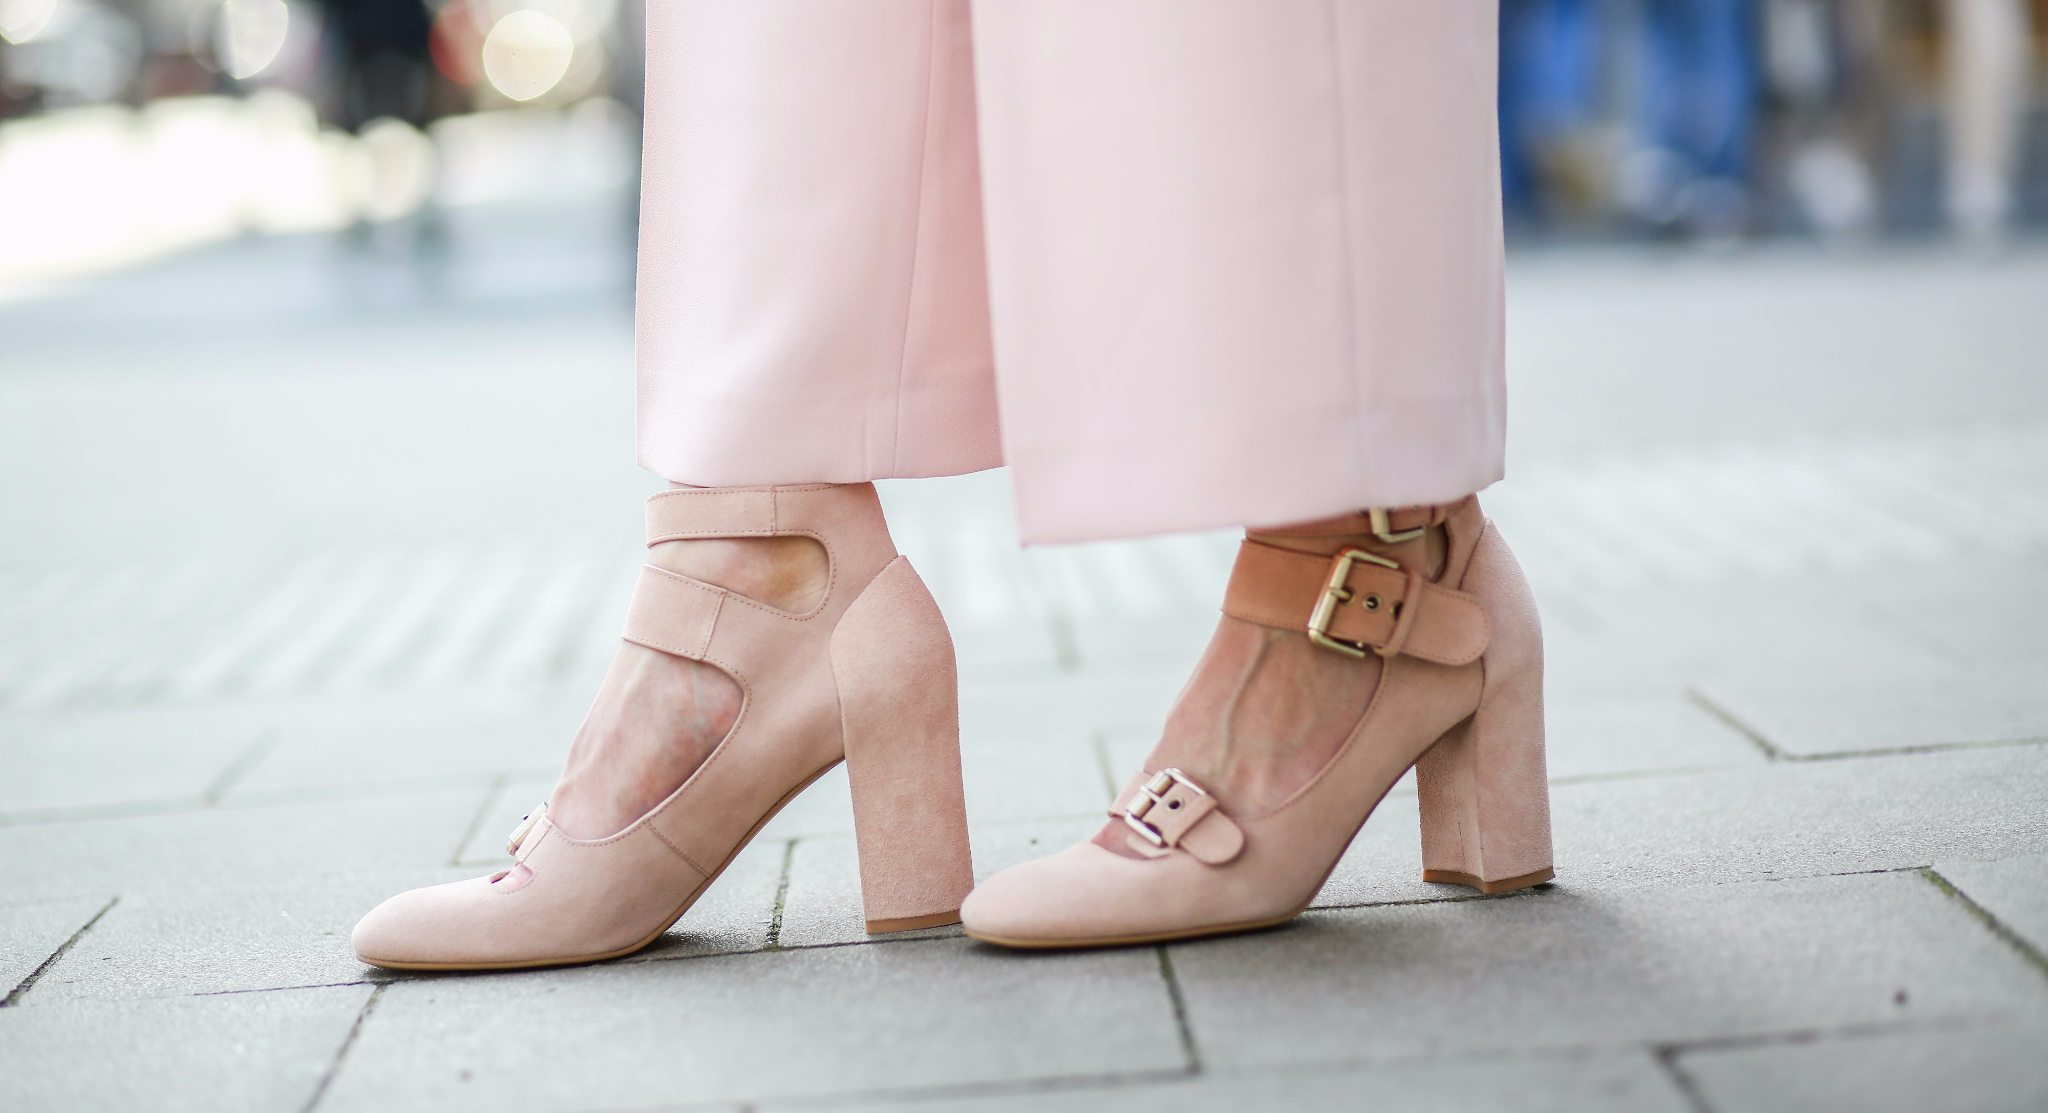 MOD-by-Monique-Fashion-Looks-A-touch-of-pink-11-1